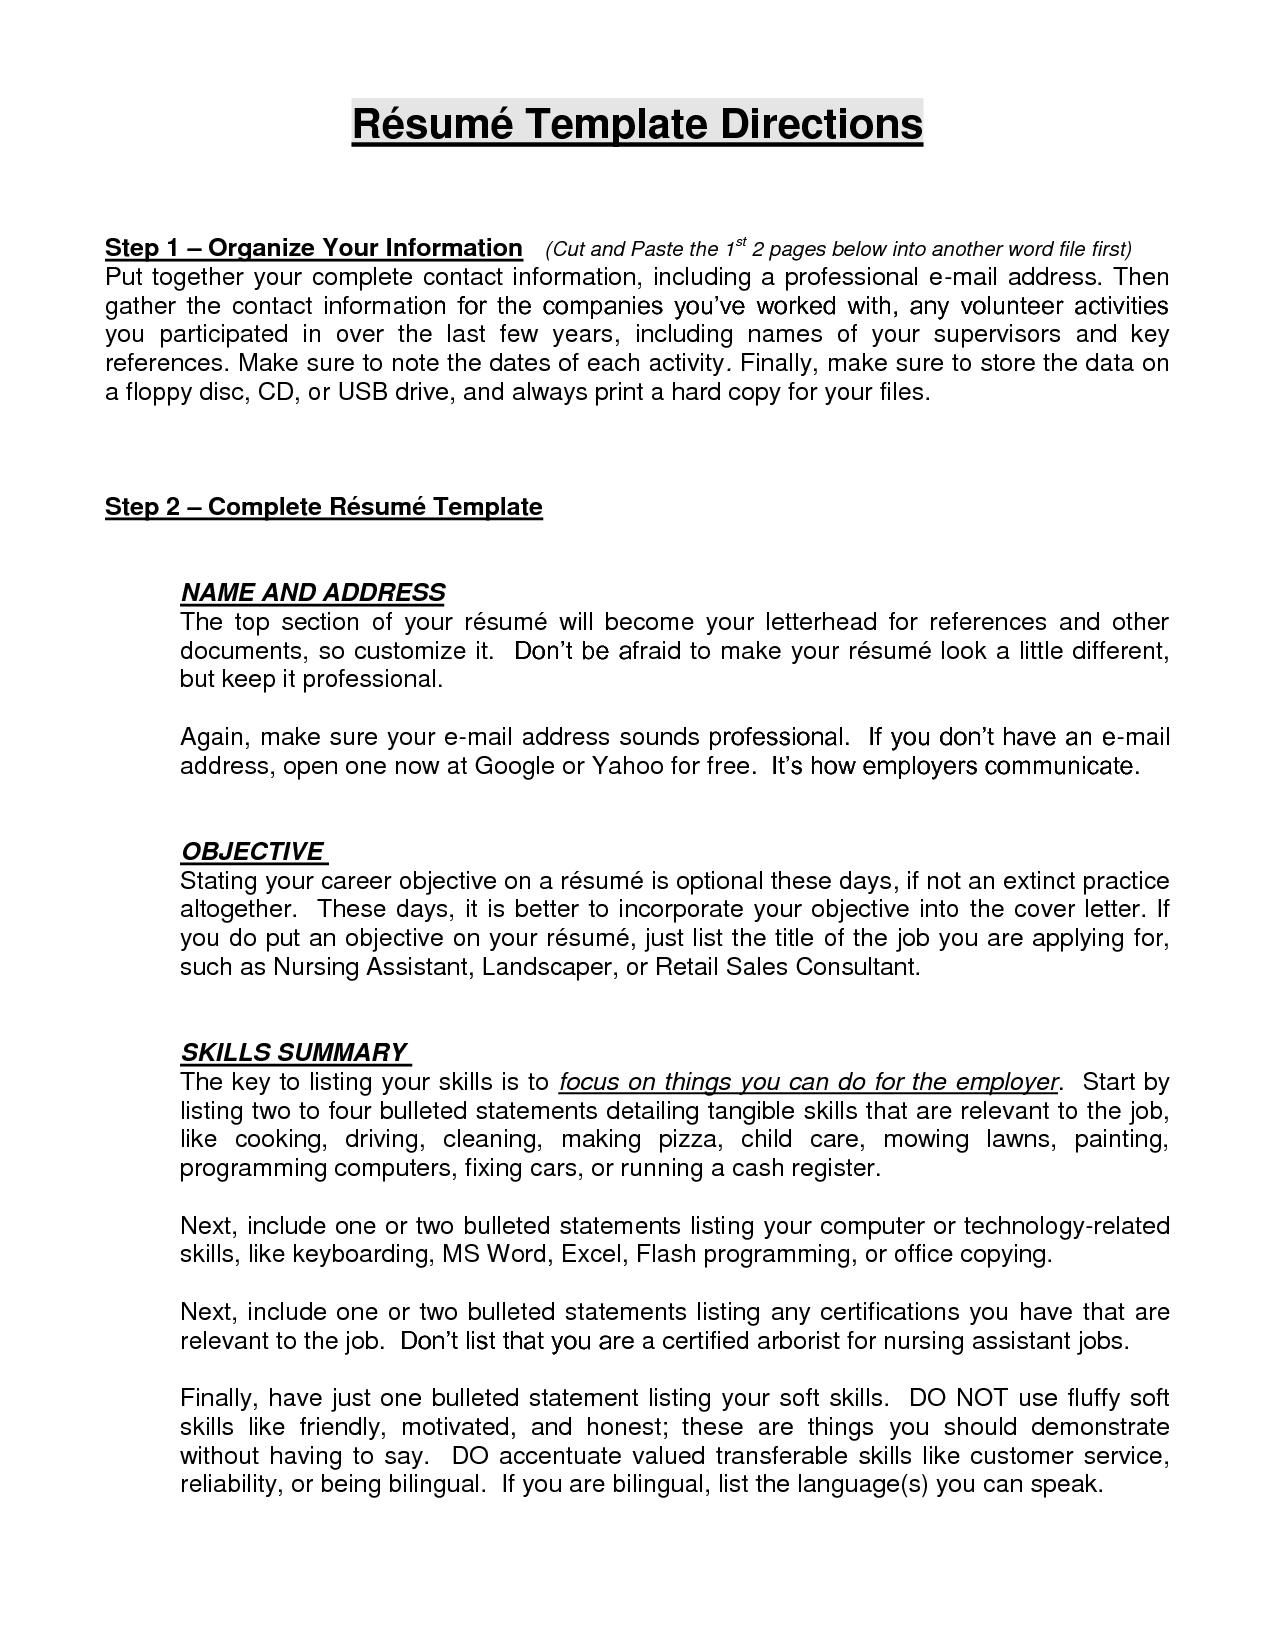 Resume Objective Statements Ideas   Http://www.jobresume.website/resume  Objective Statements Ideas/